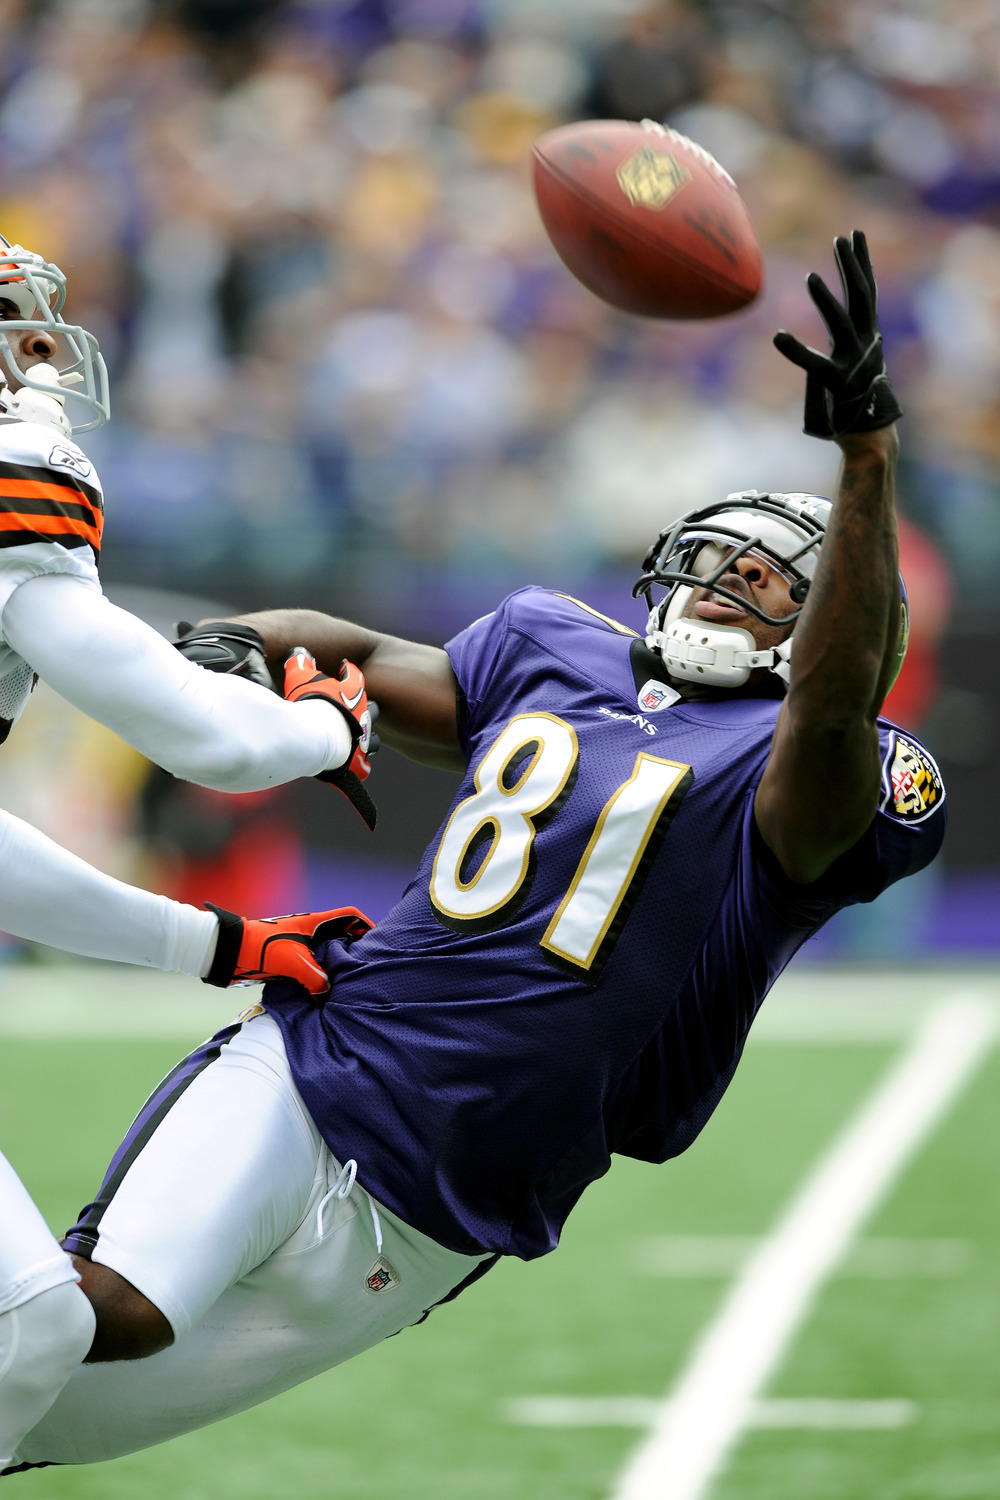 280100926_007_NFL_Browns_at_Ravens_1st.JPG